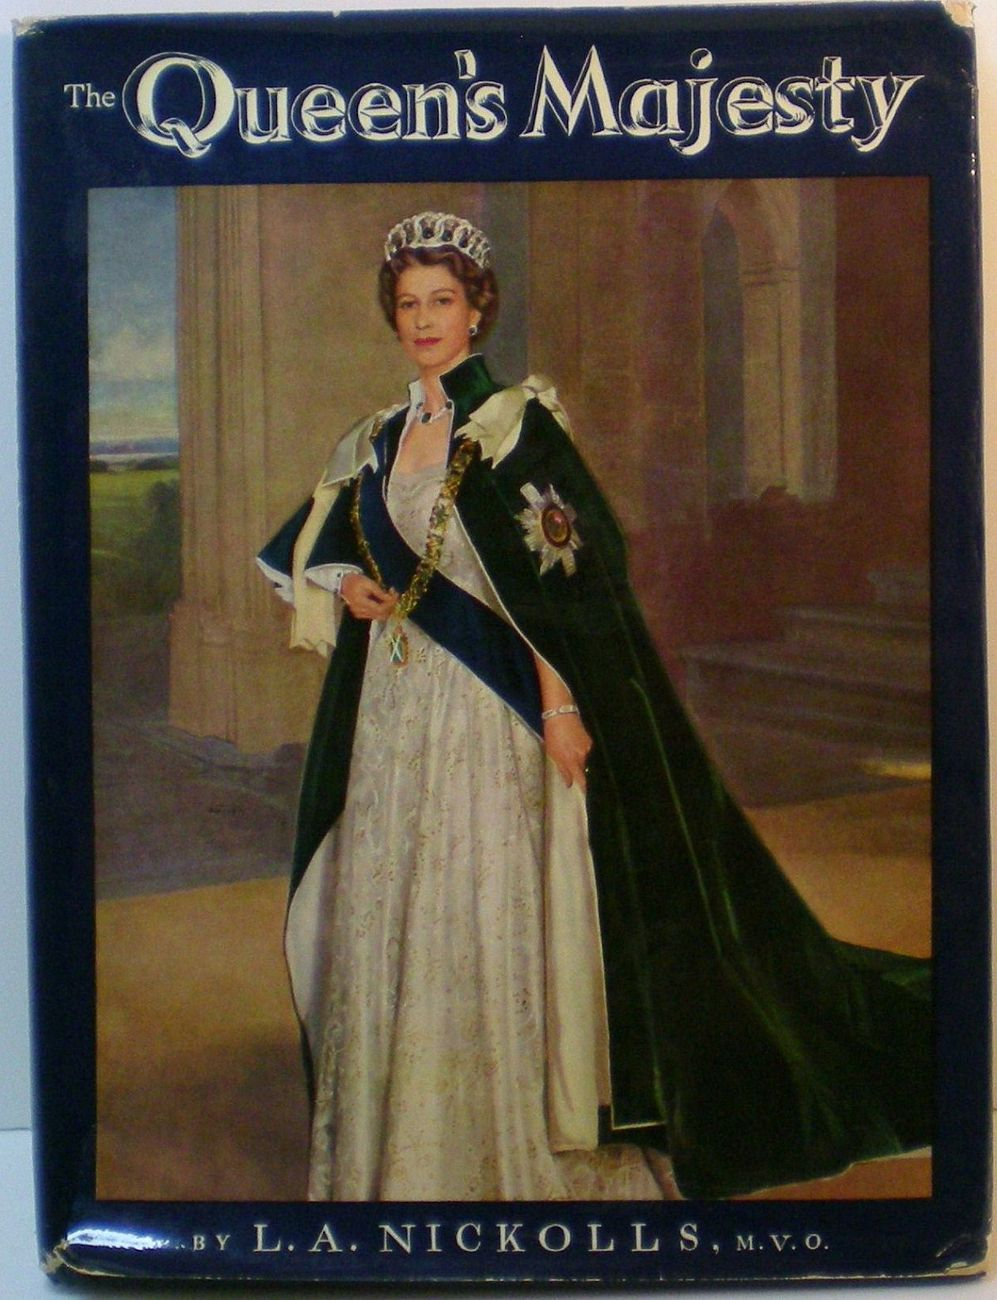 The Queen's Majesty: A Diary of the Royal Year by LA Nickolls M.V.O 1957